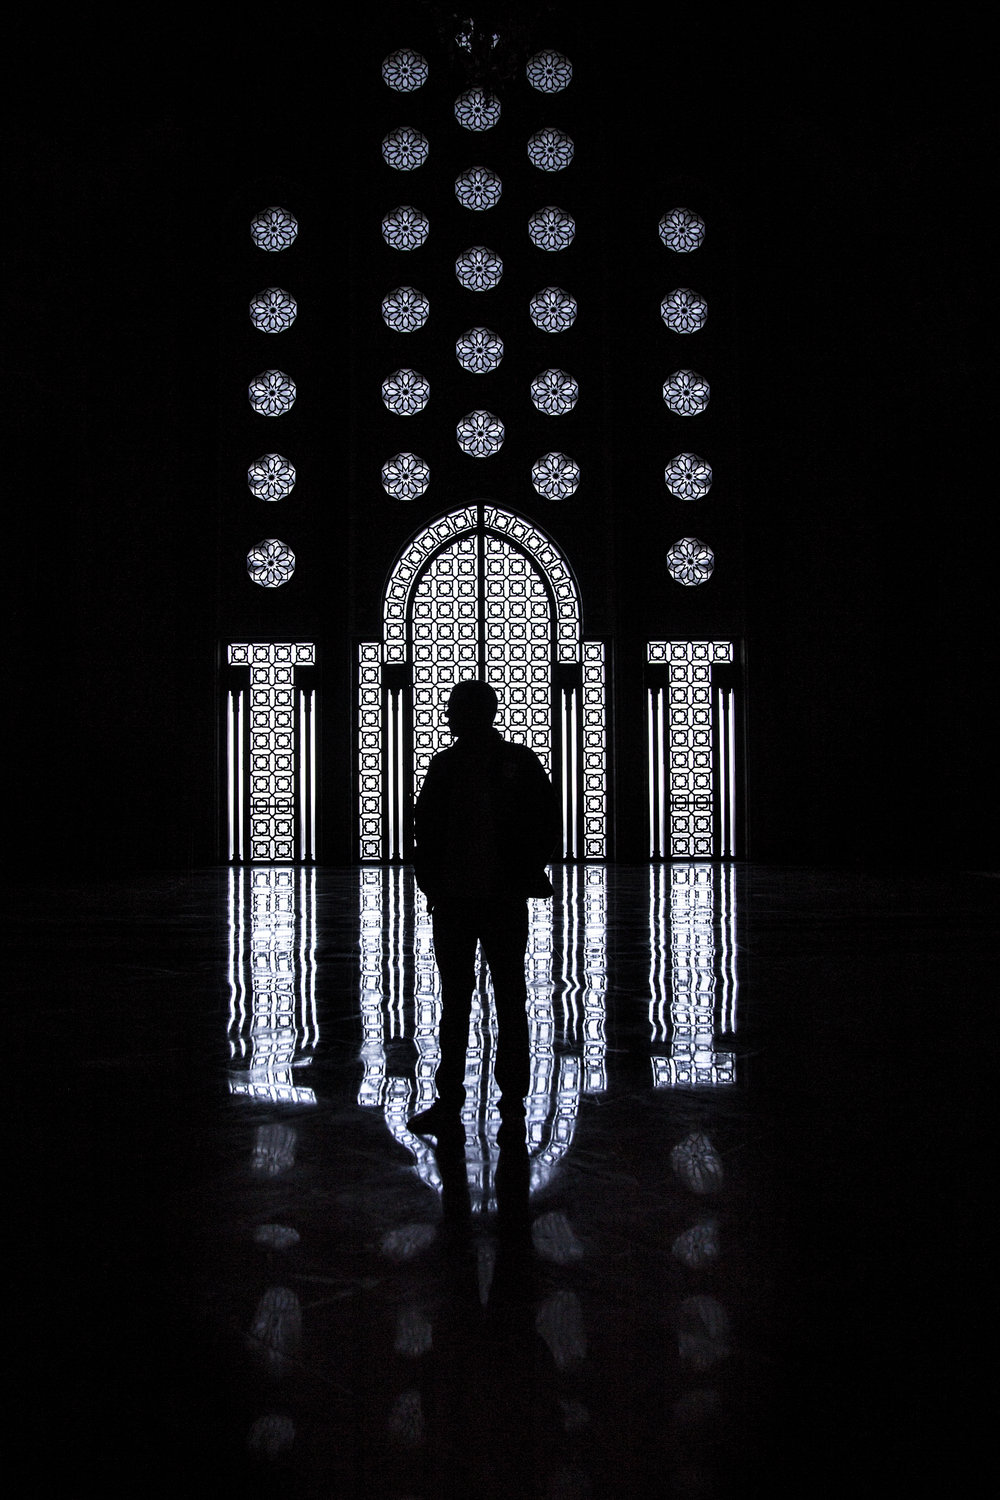 A tourist gazes at the architecture of the Hassan II Mosque in Casablanca, Morocco on December 20, 2017.